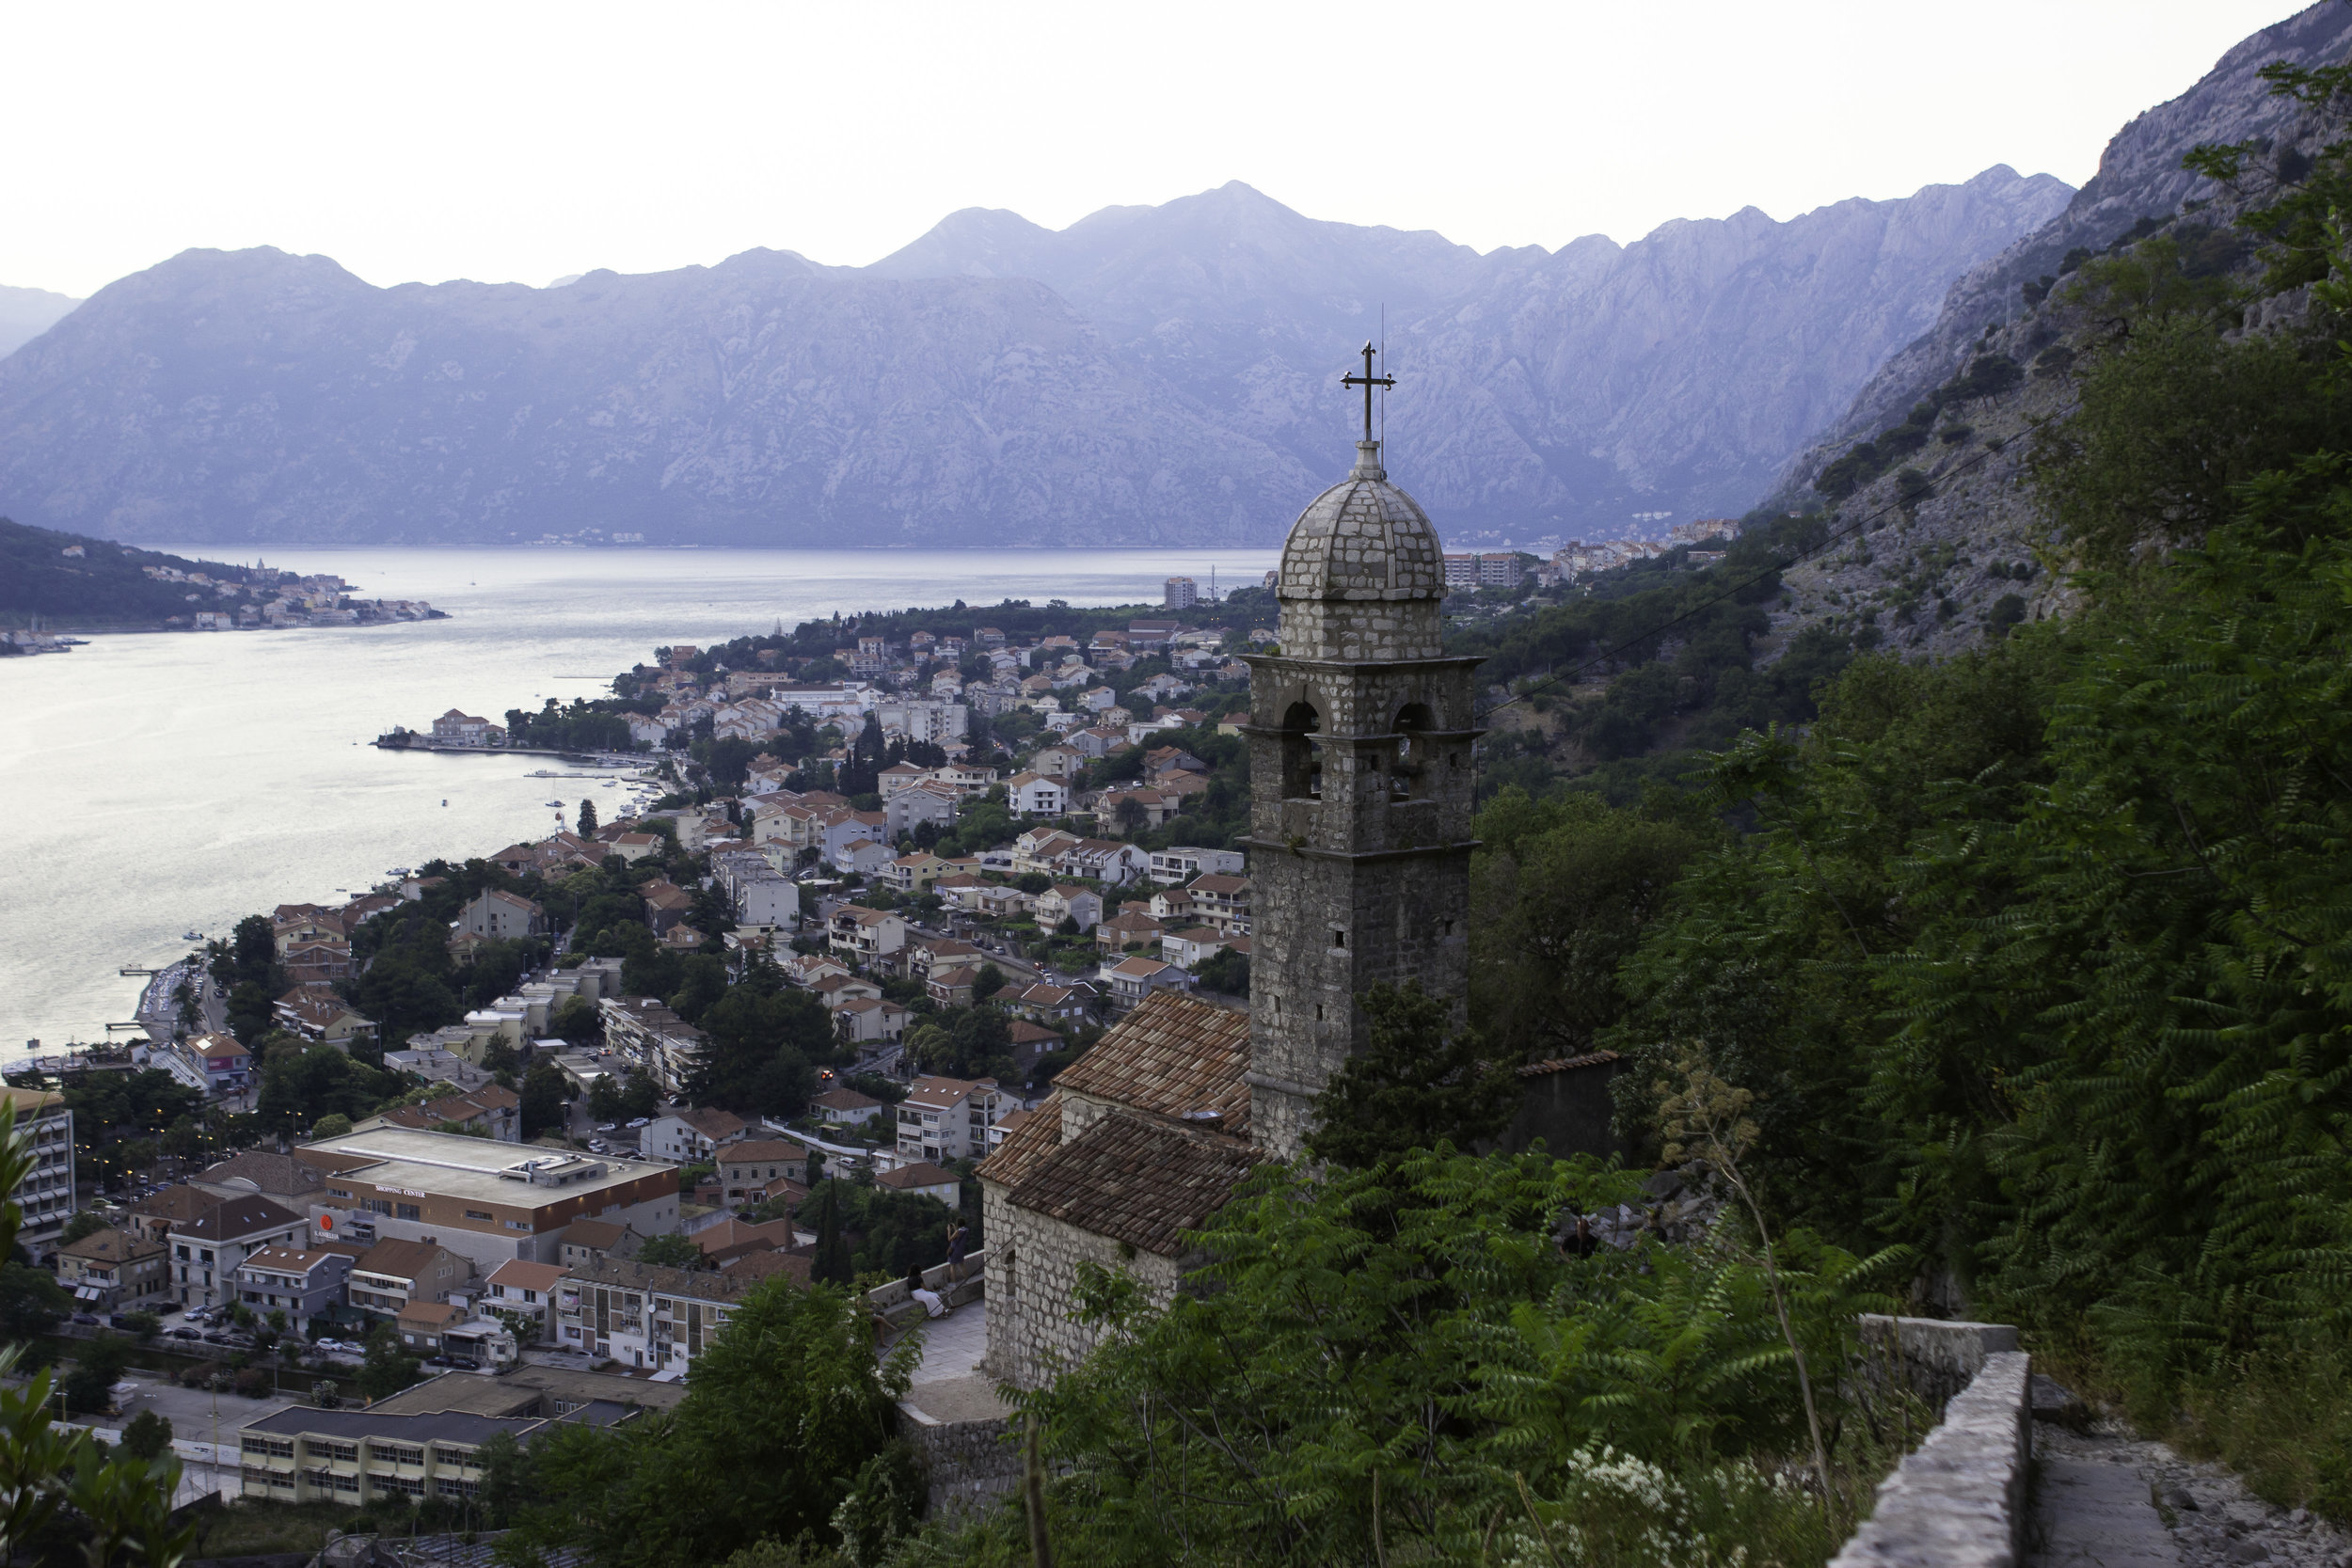 Kotor and the Bay of Kotor from high up along the fortress walls.